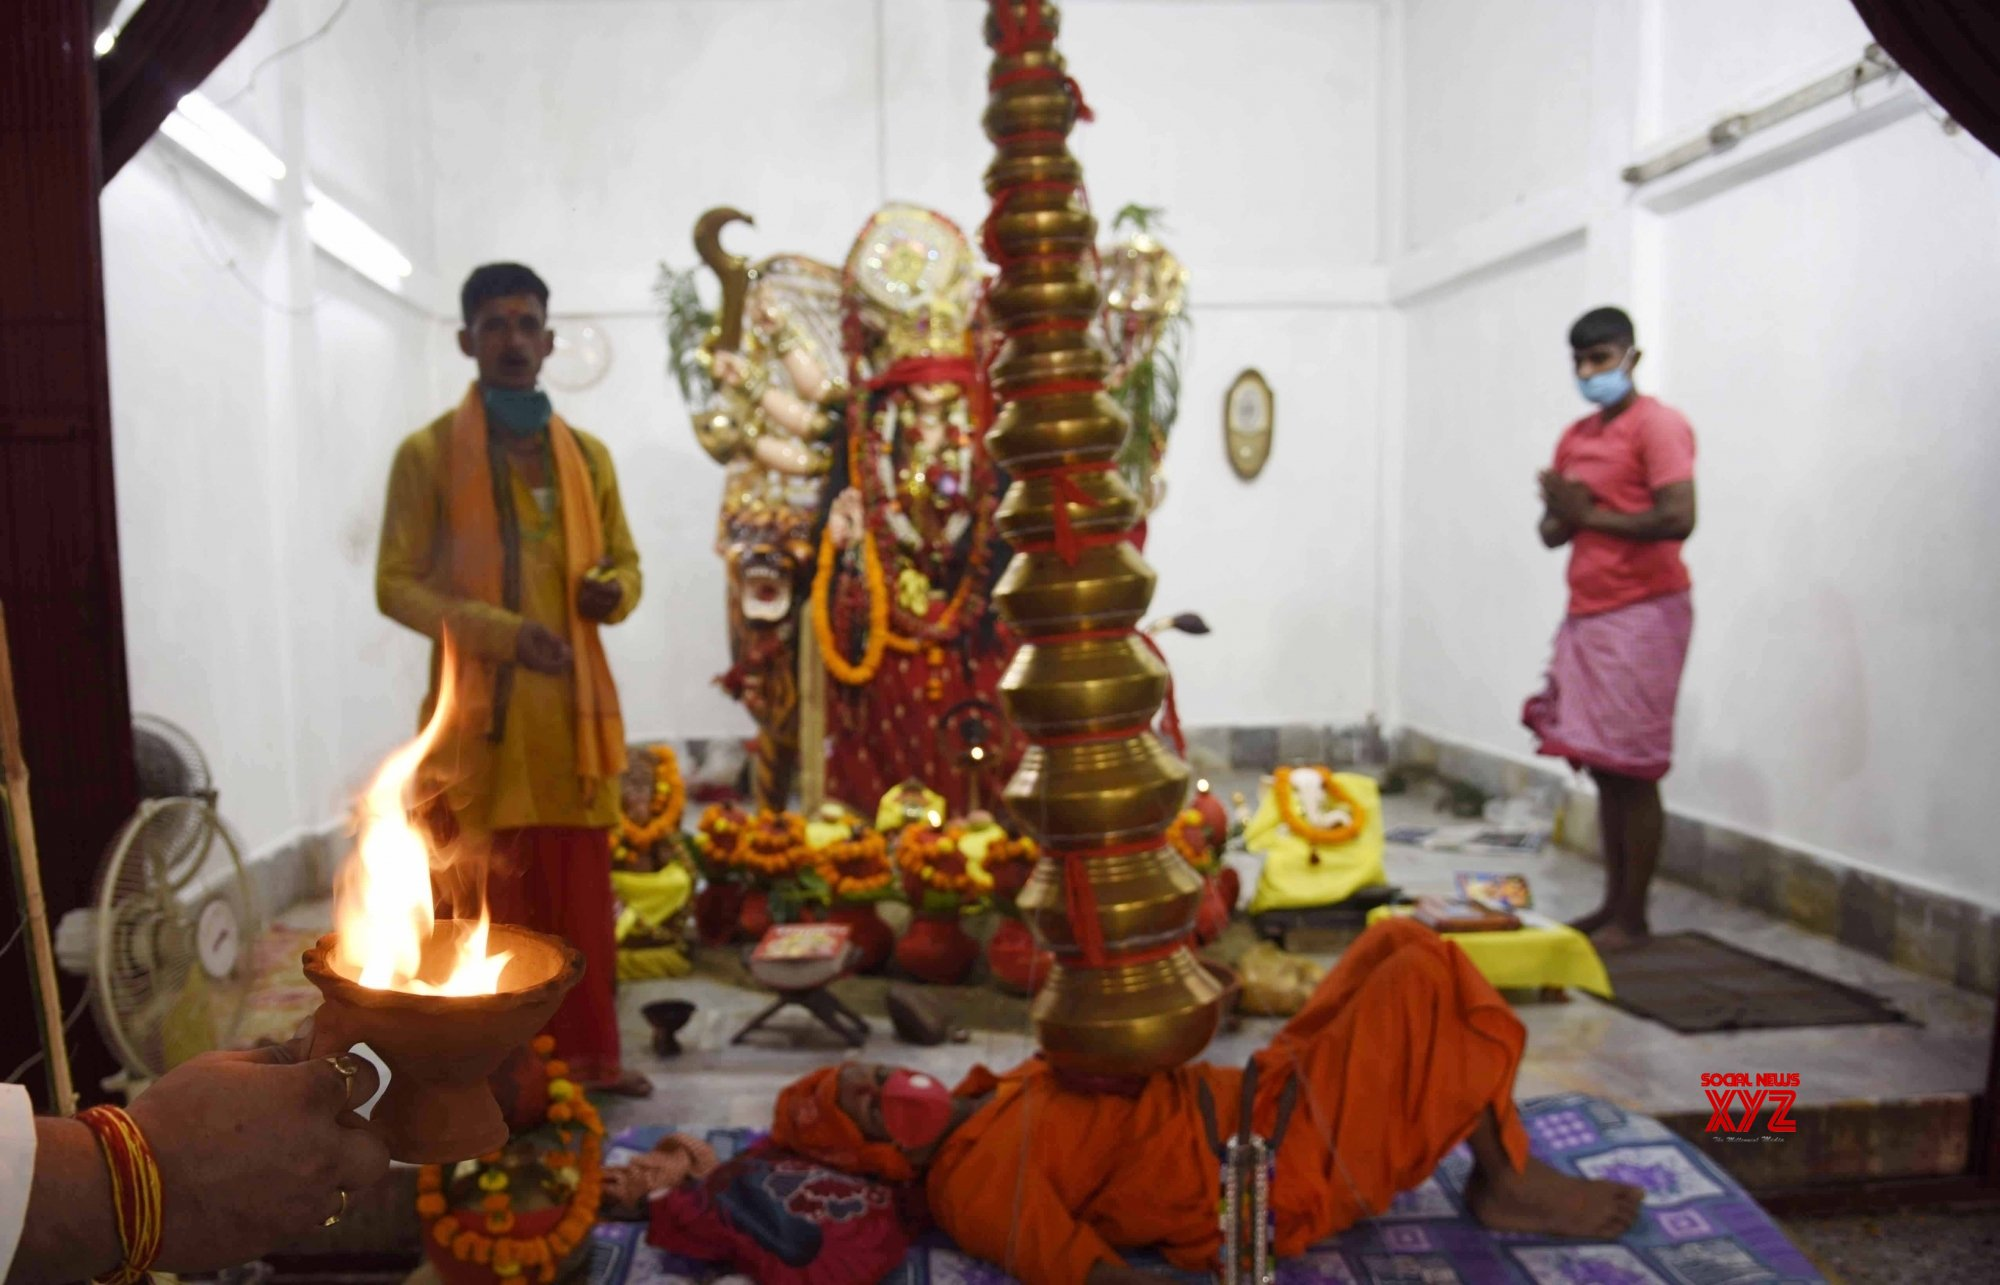 Patna: Devotees throng Naulakha Temple on the first day of Navaratri #Gallery